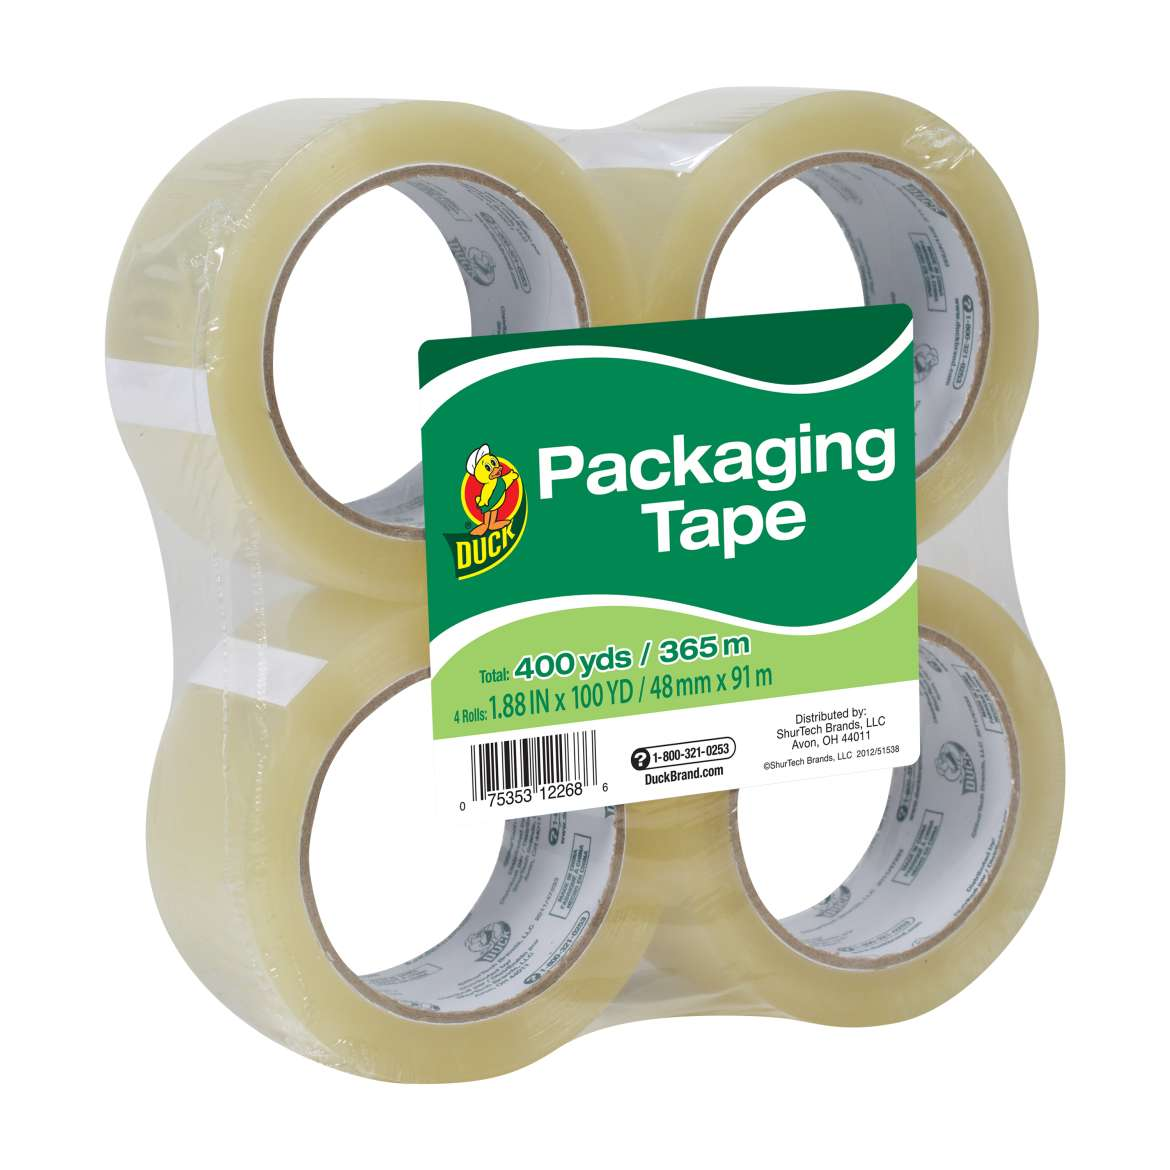 Duck Brand Standard Packaging Tape - Clear, 4 pk, 1.88 in. x 100 yd.